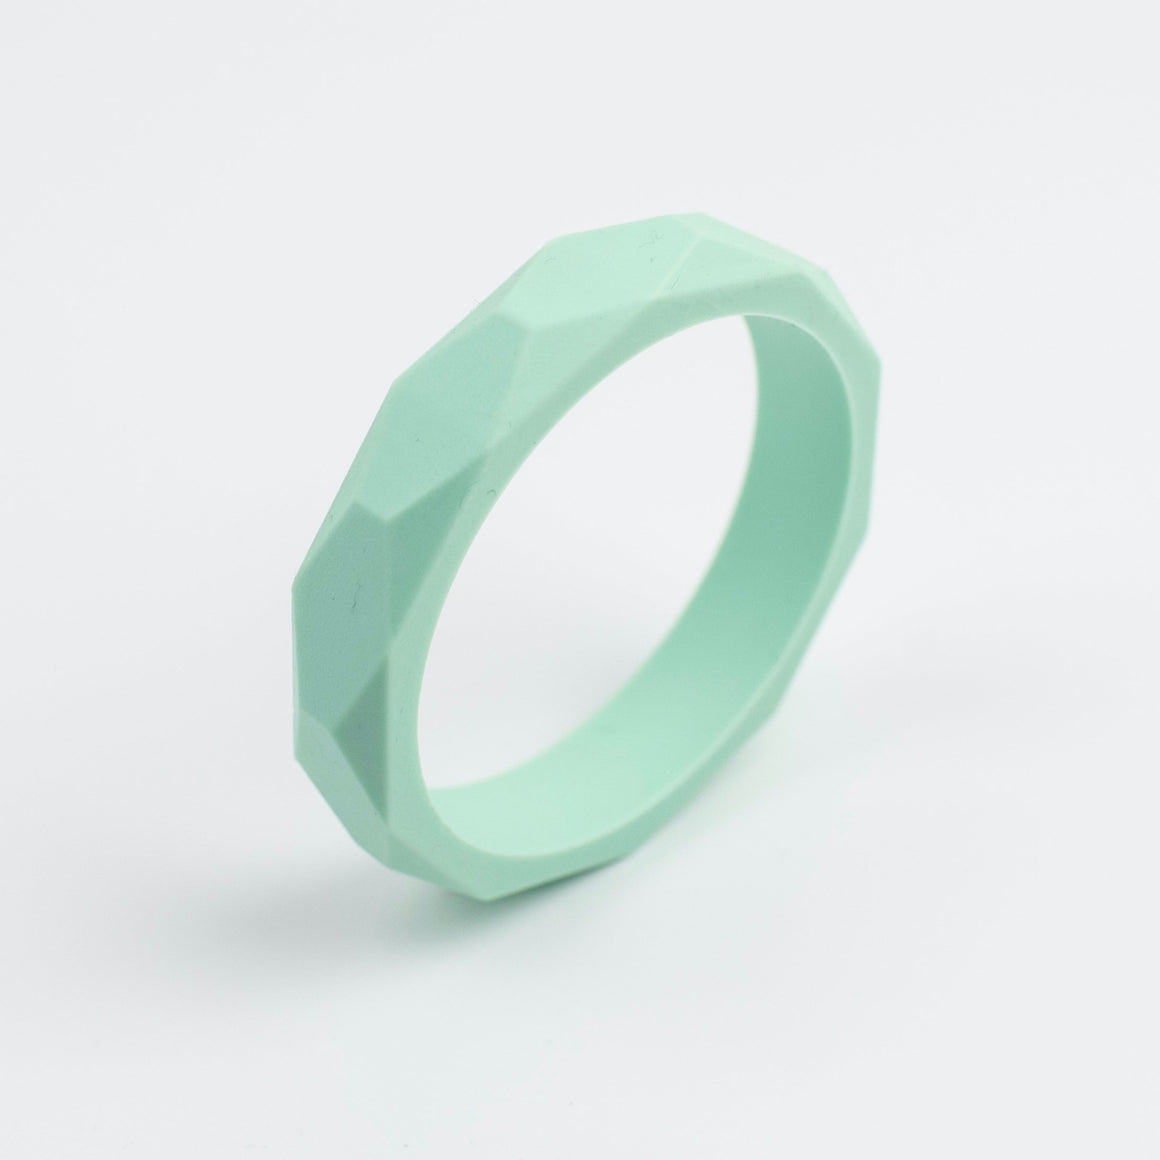 Teething Bangle - Mint Green - Sebandroo